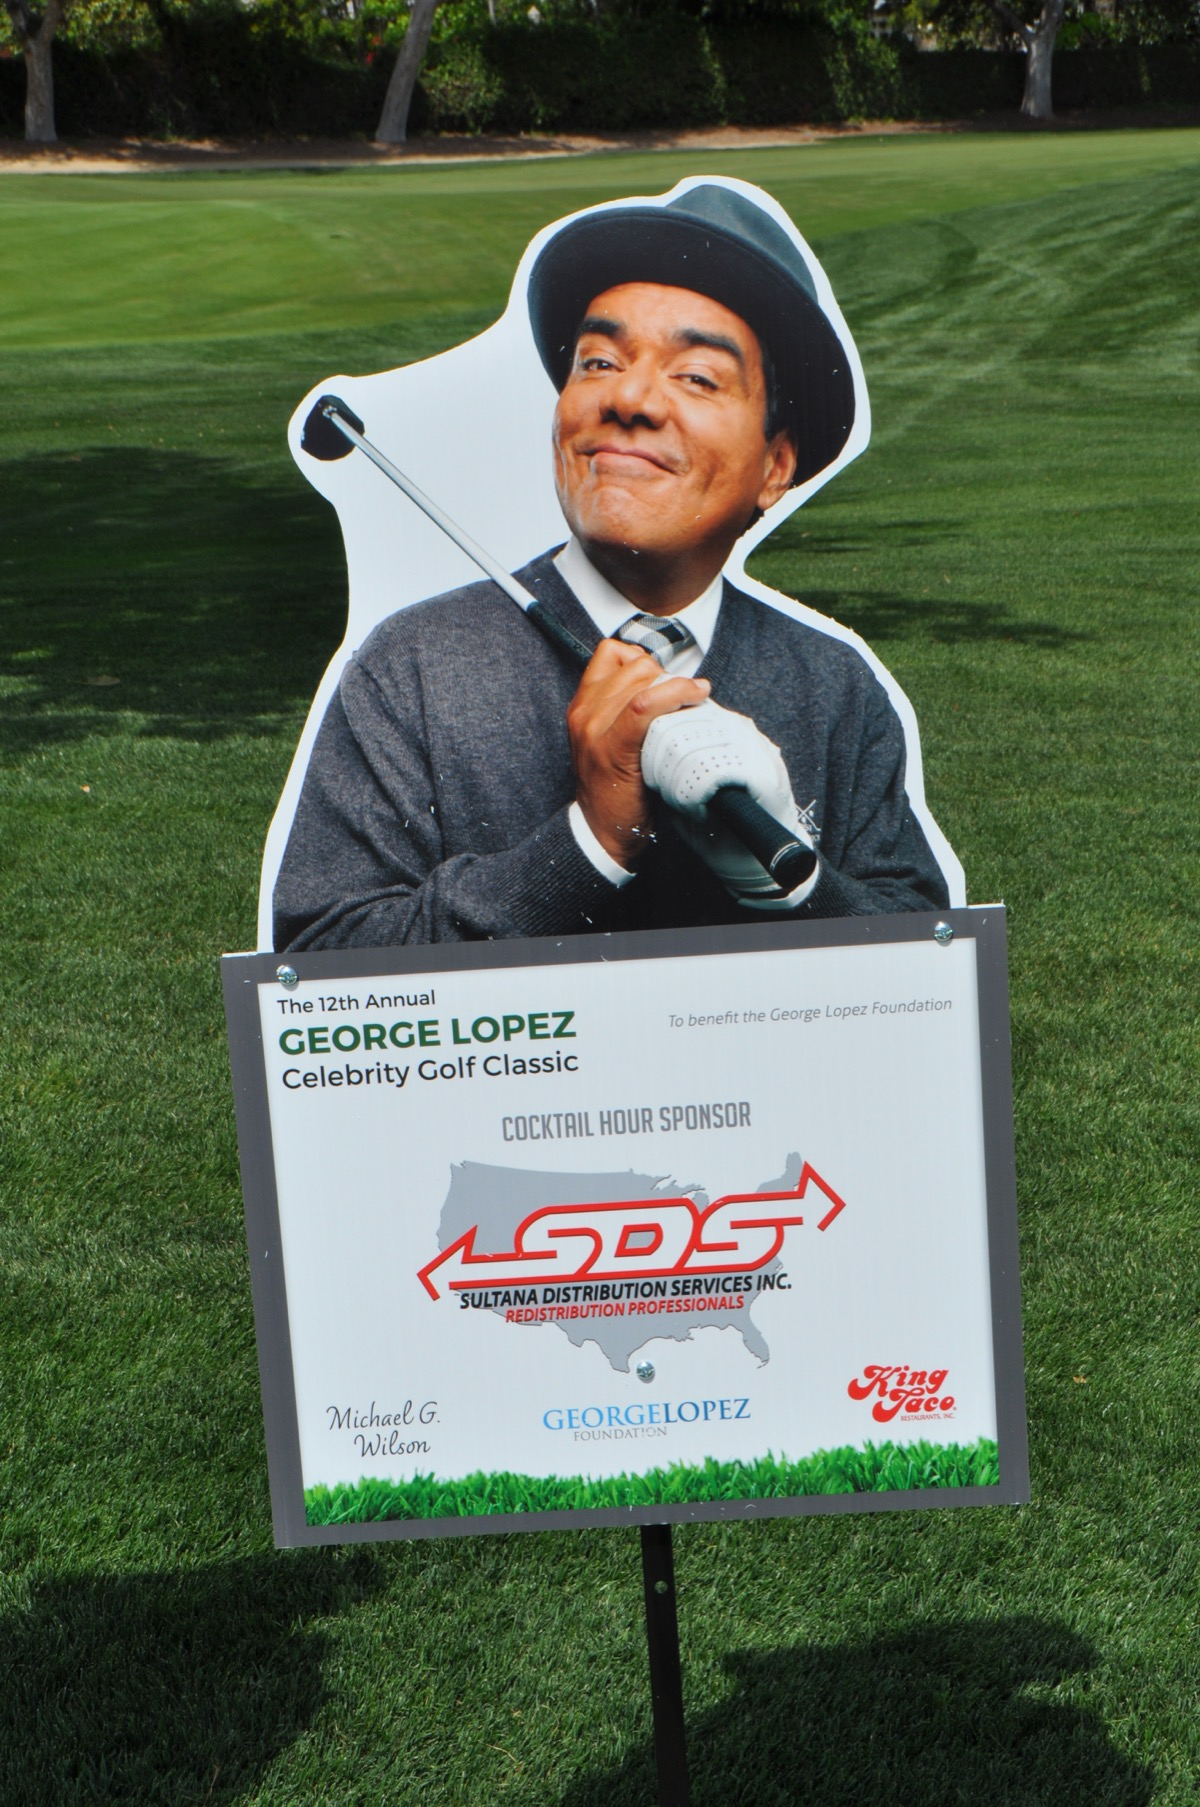 12th Annual George Lopez Celebrity Golf Classic Photos - 111.jpg